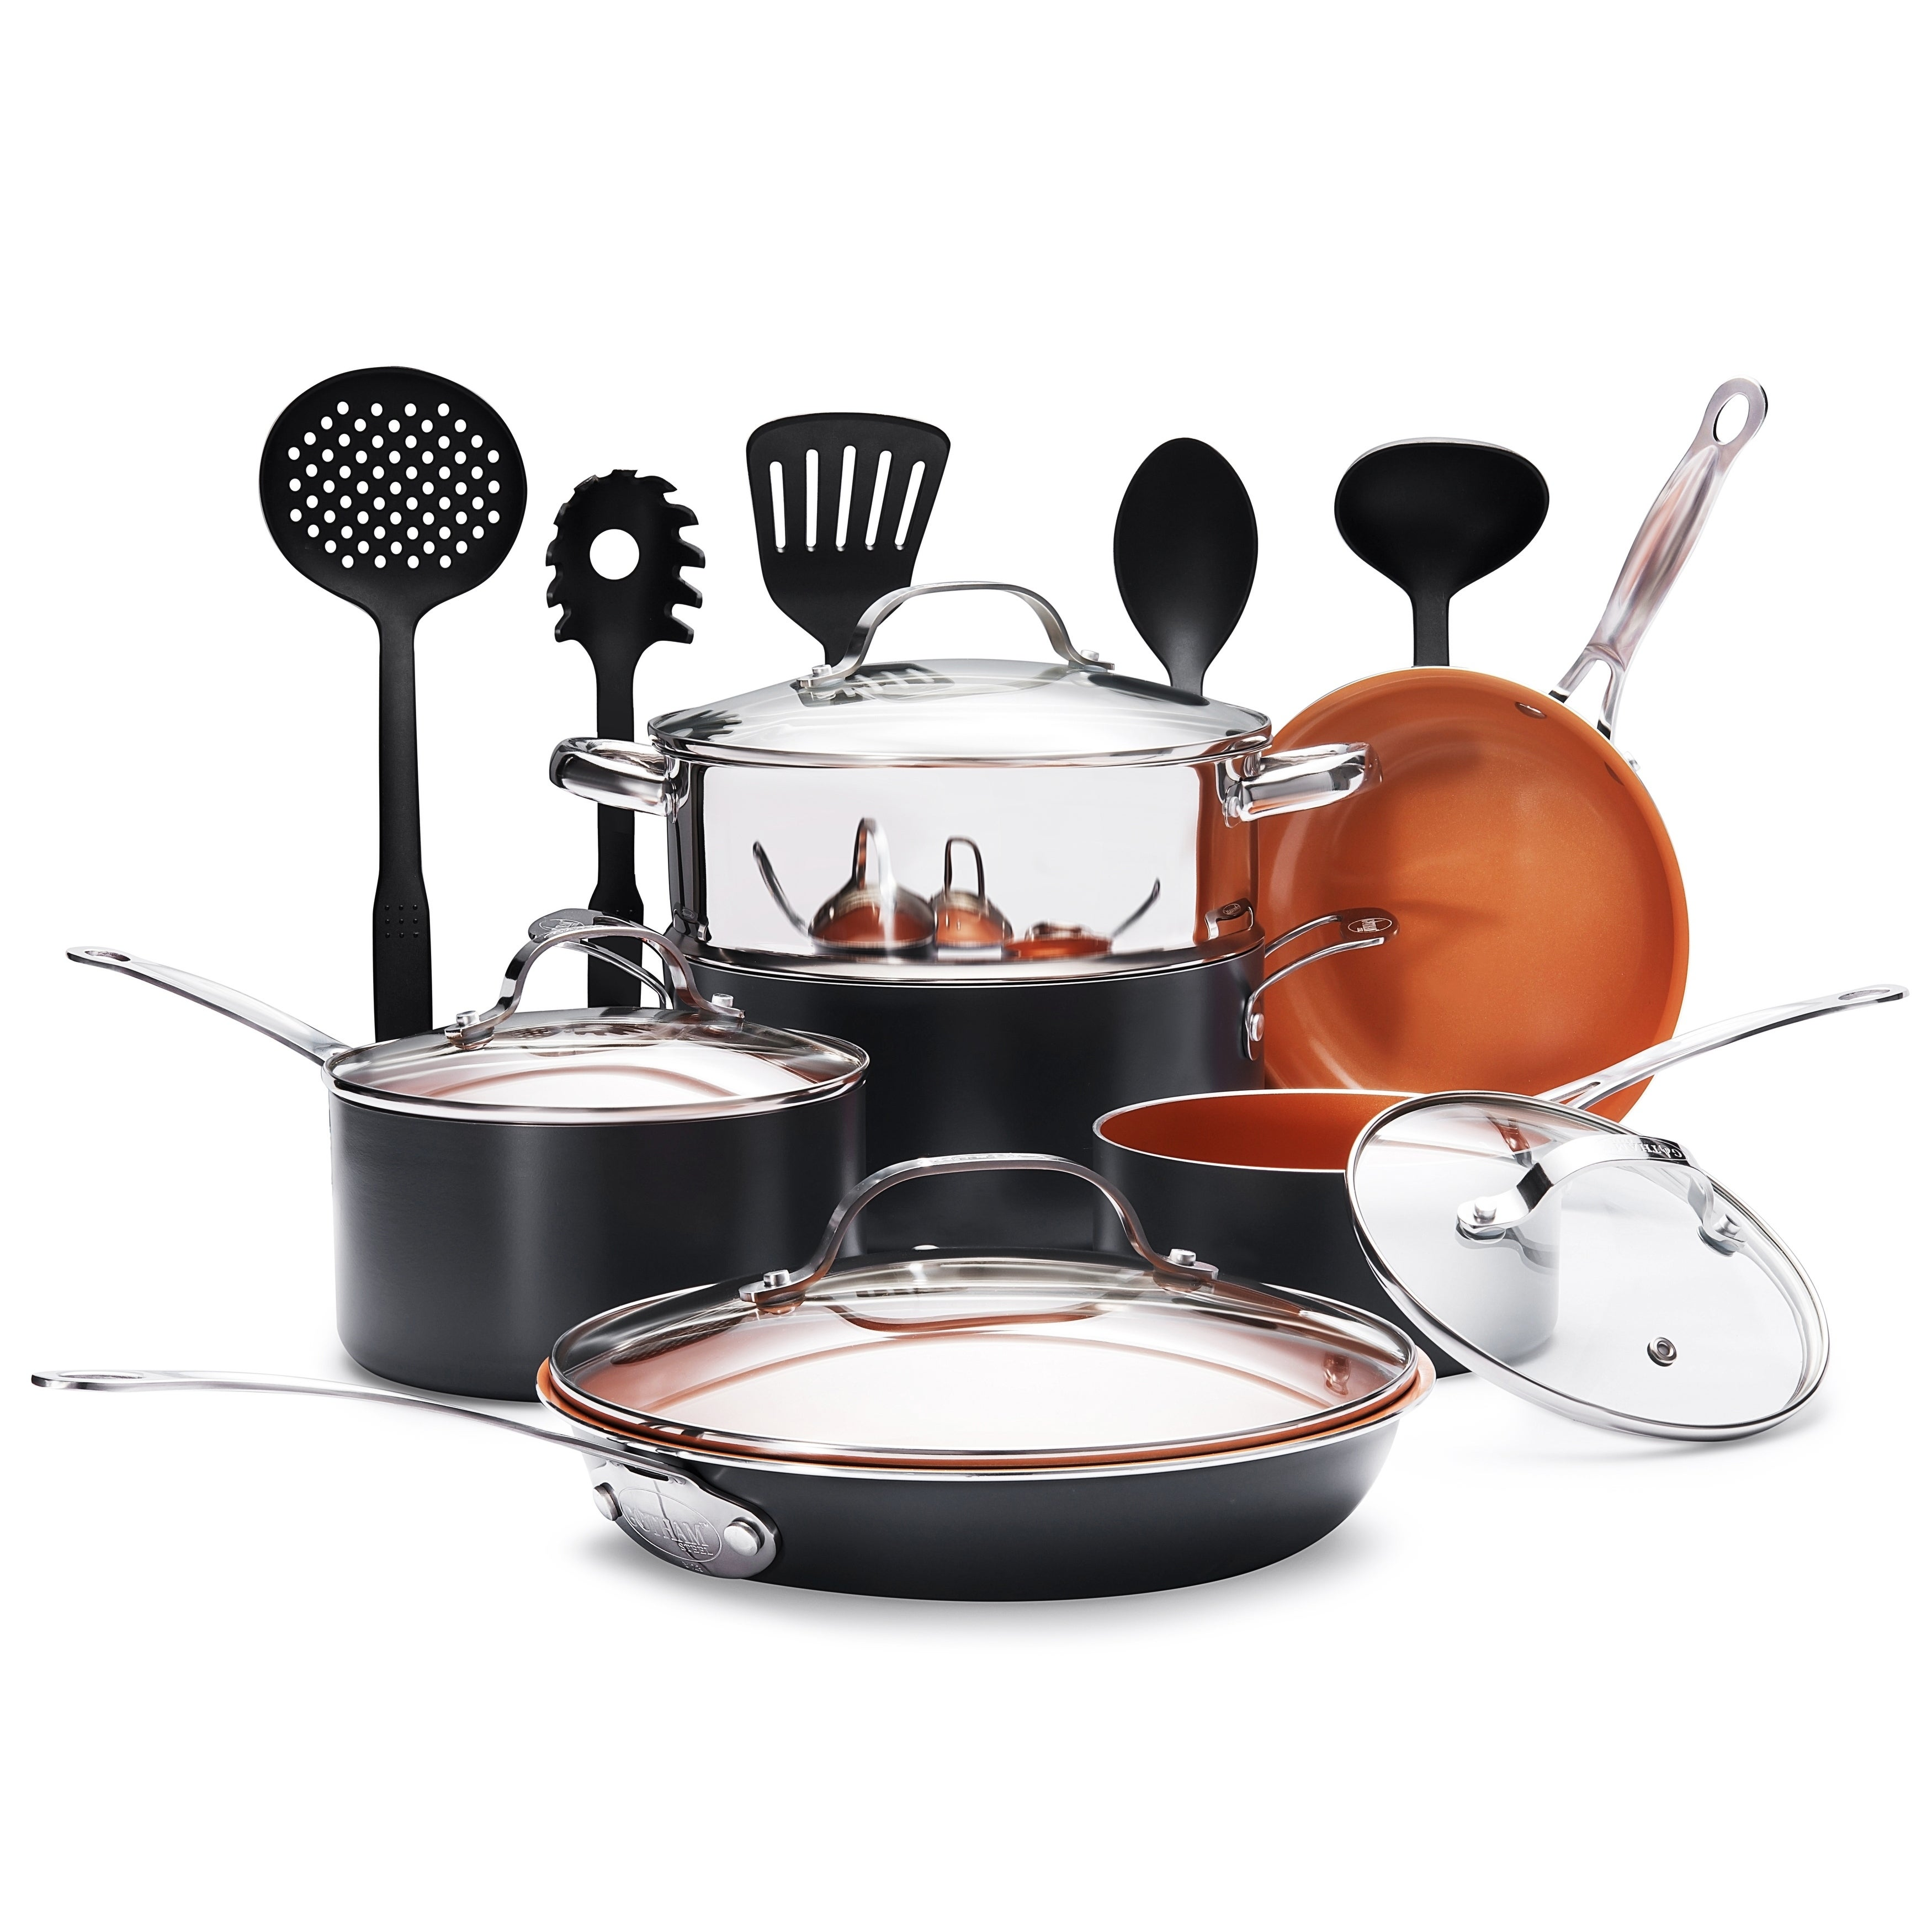 Titanium or ceramic pans. Customer reviews as the best feature 20